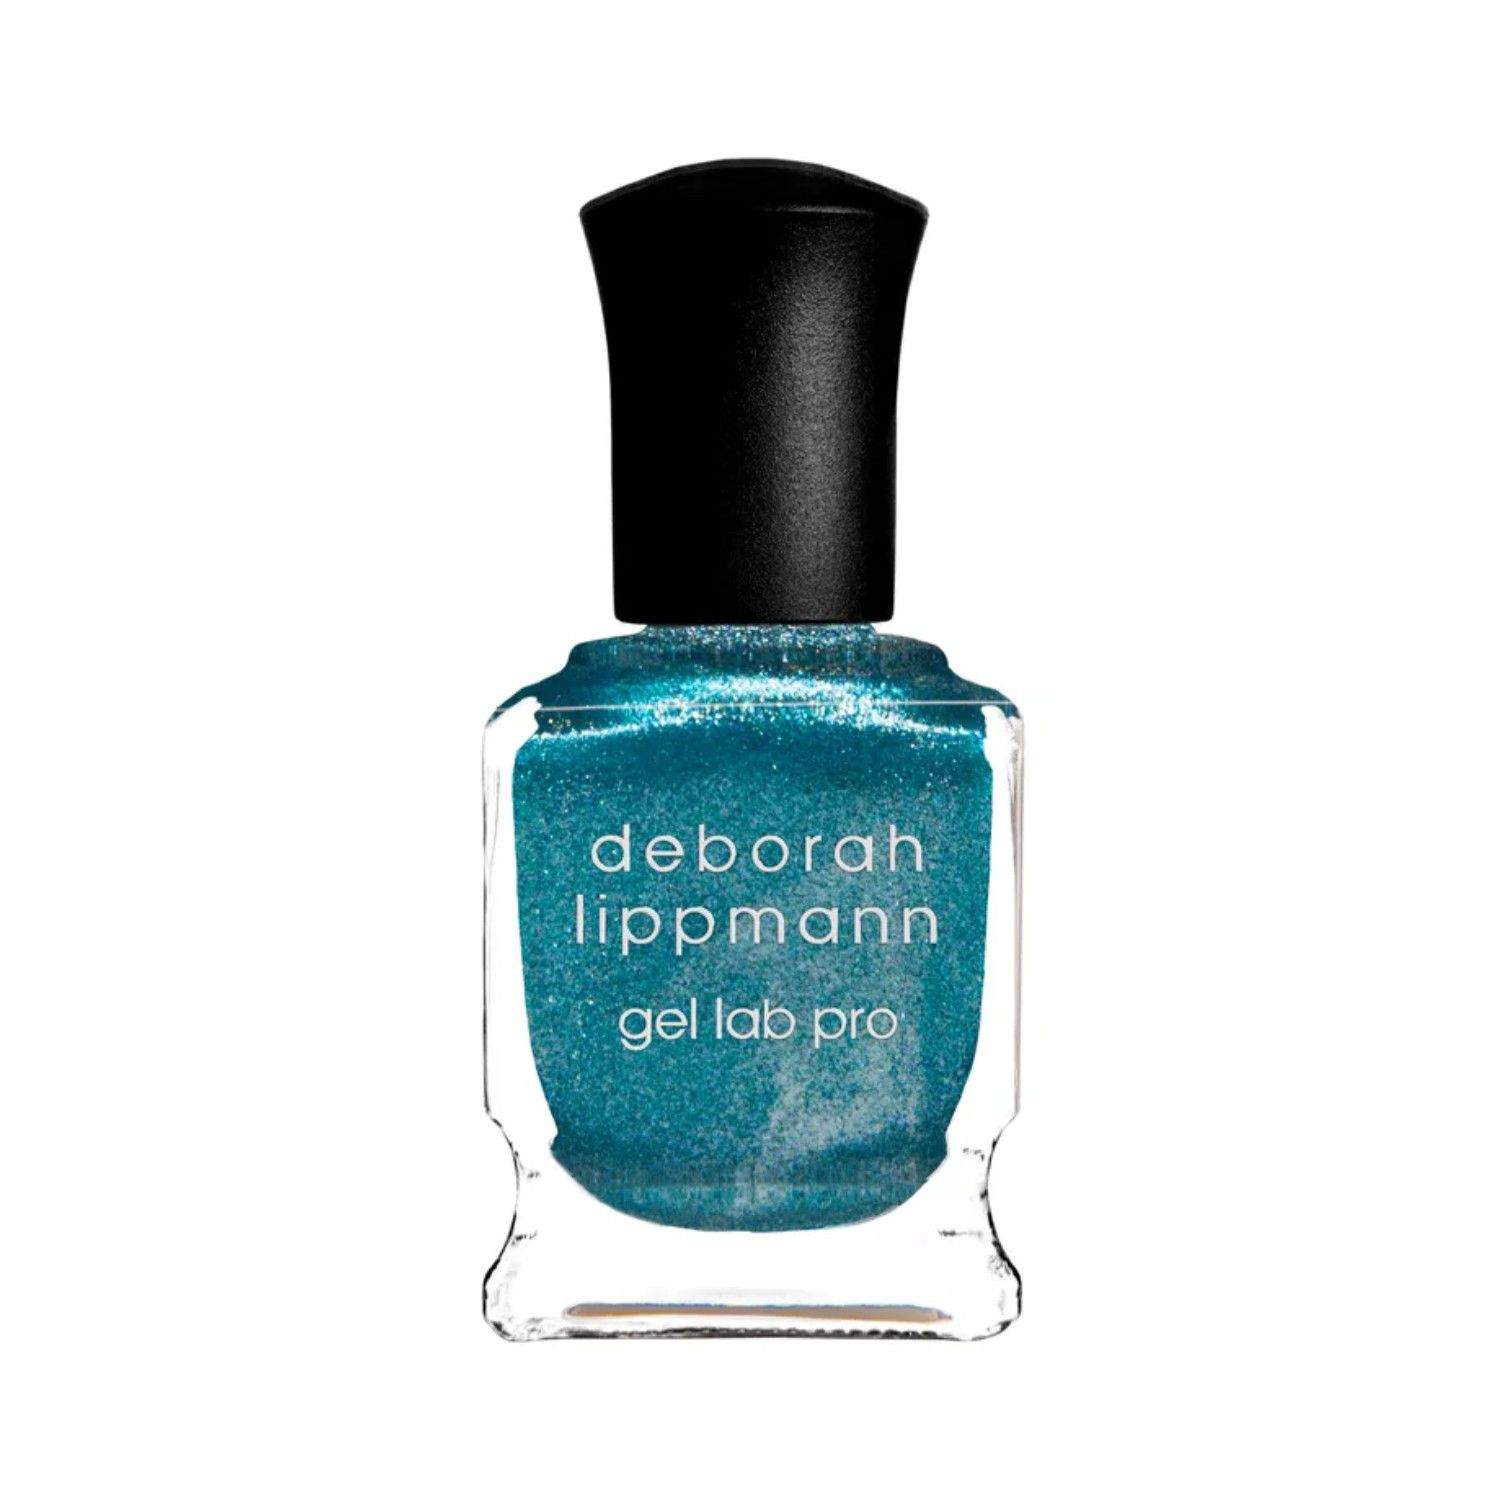 Bottle of glittery blue nail polish with a black top.